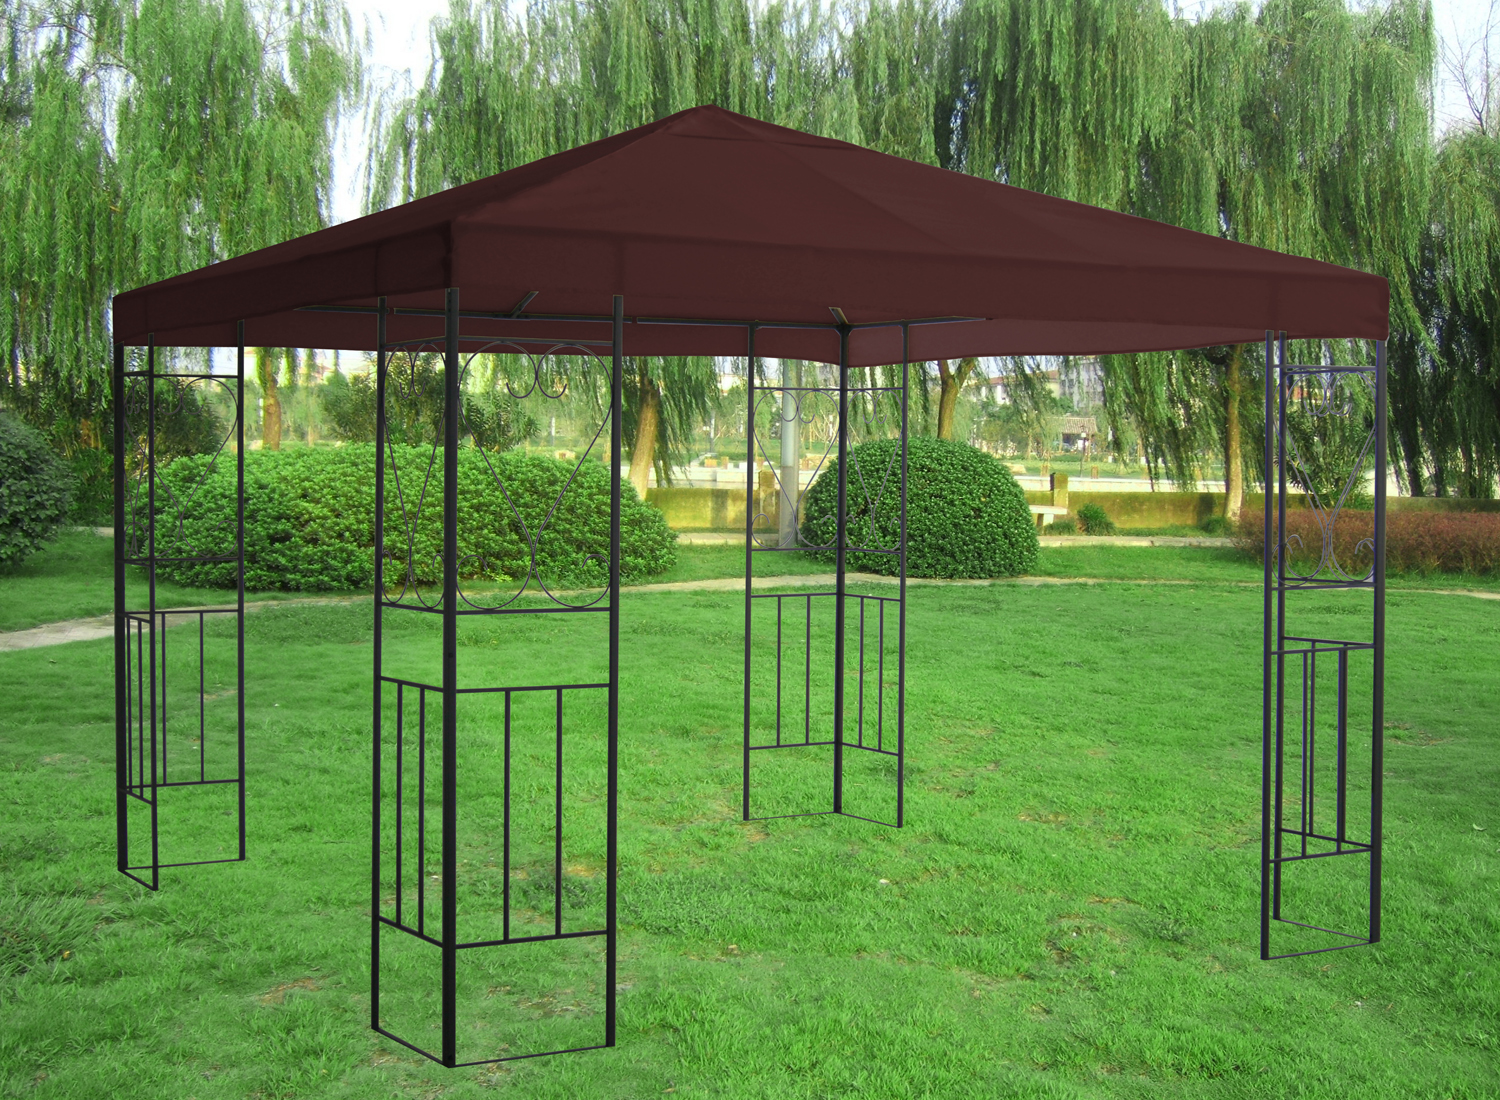 3x3m metal gazebo pavilion canopy sun shade shelter. Black Bedroom Furniture Sets. Home Design Ideas